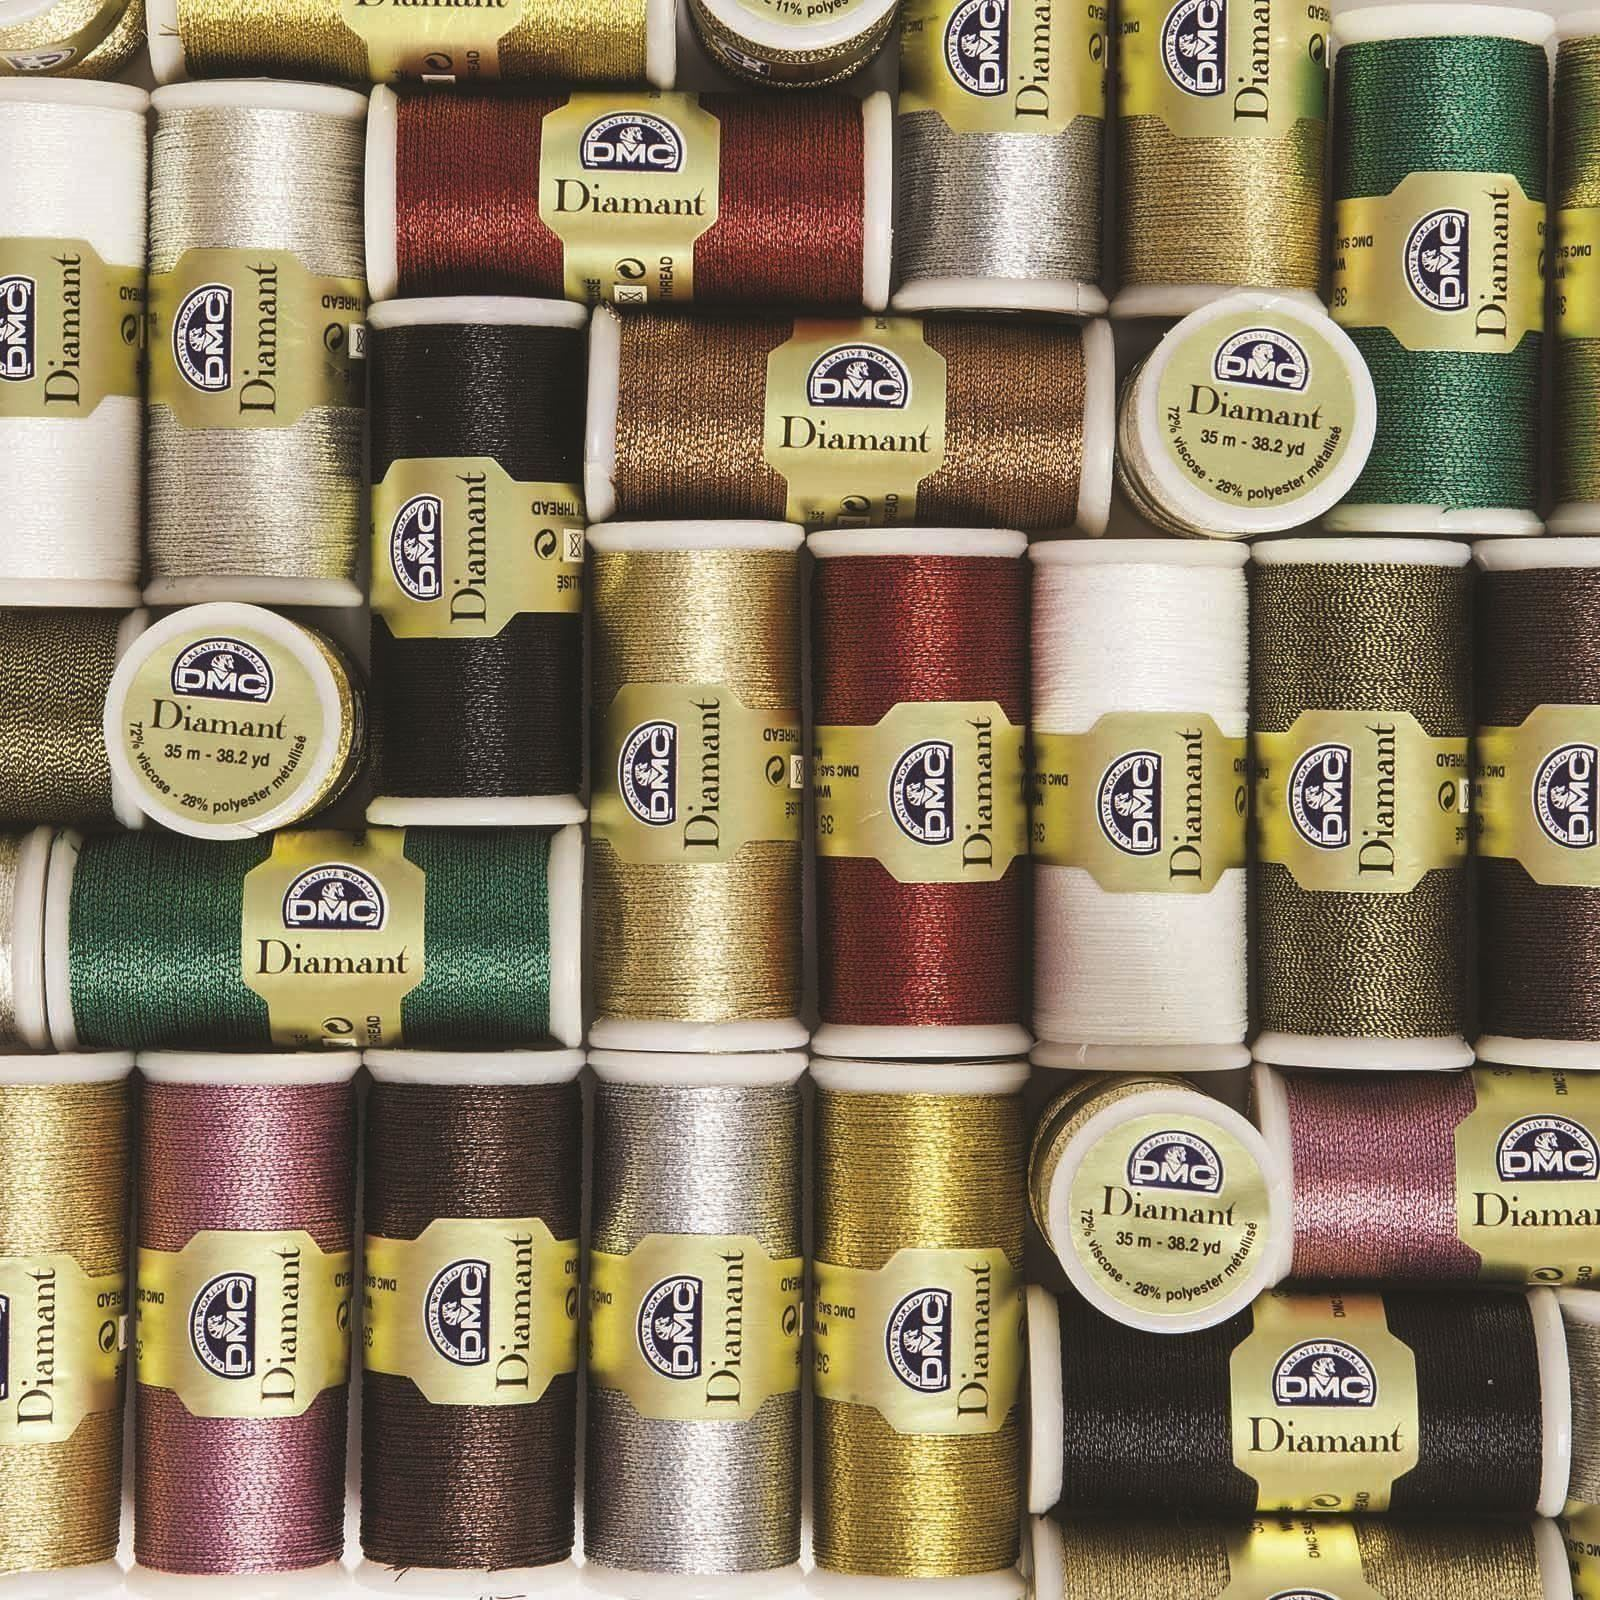 DMC-Diamant-Metallic-Embroidery-Thread-35m-Spool-Cross-Stitch thumbnail 27